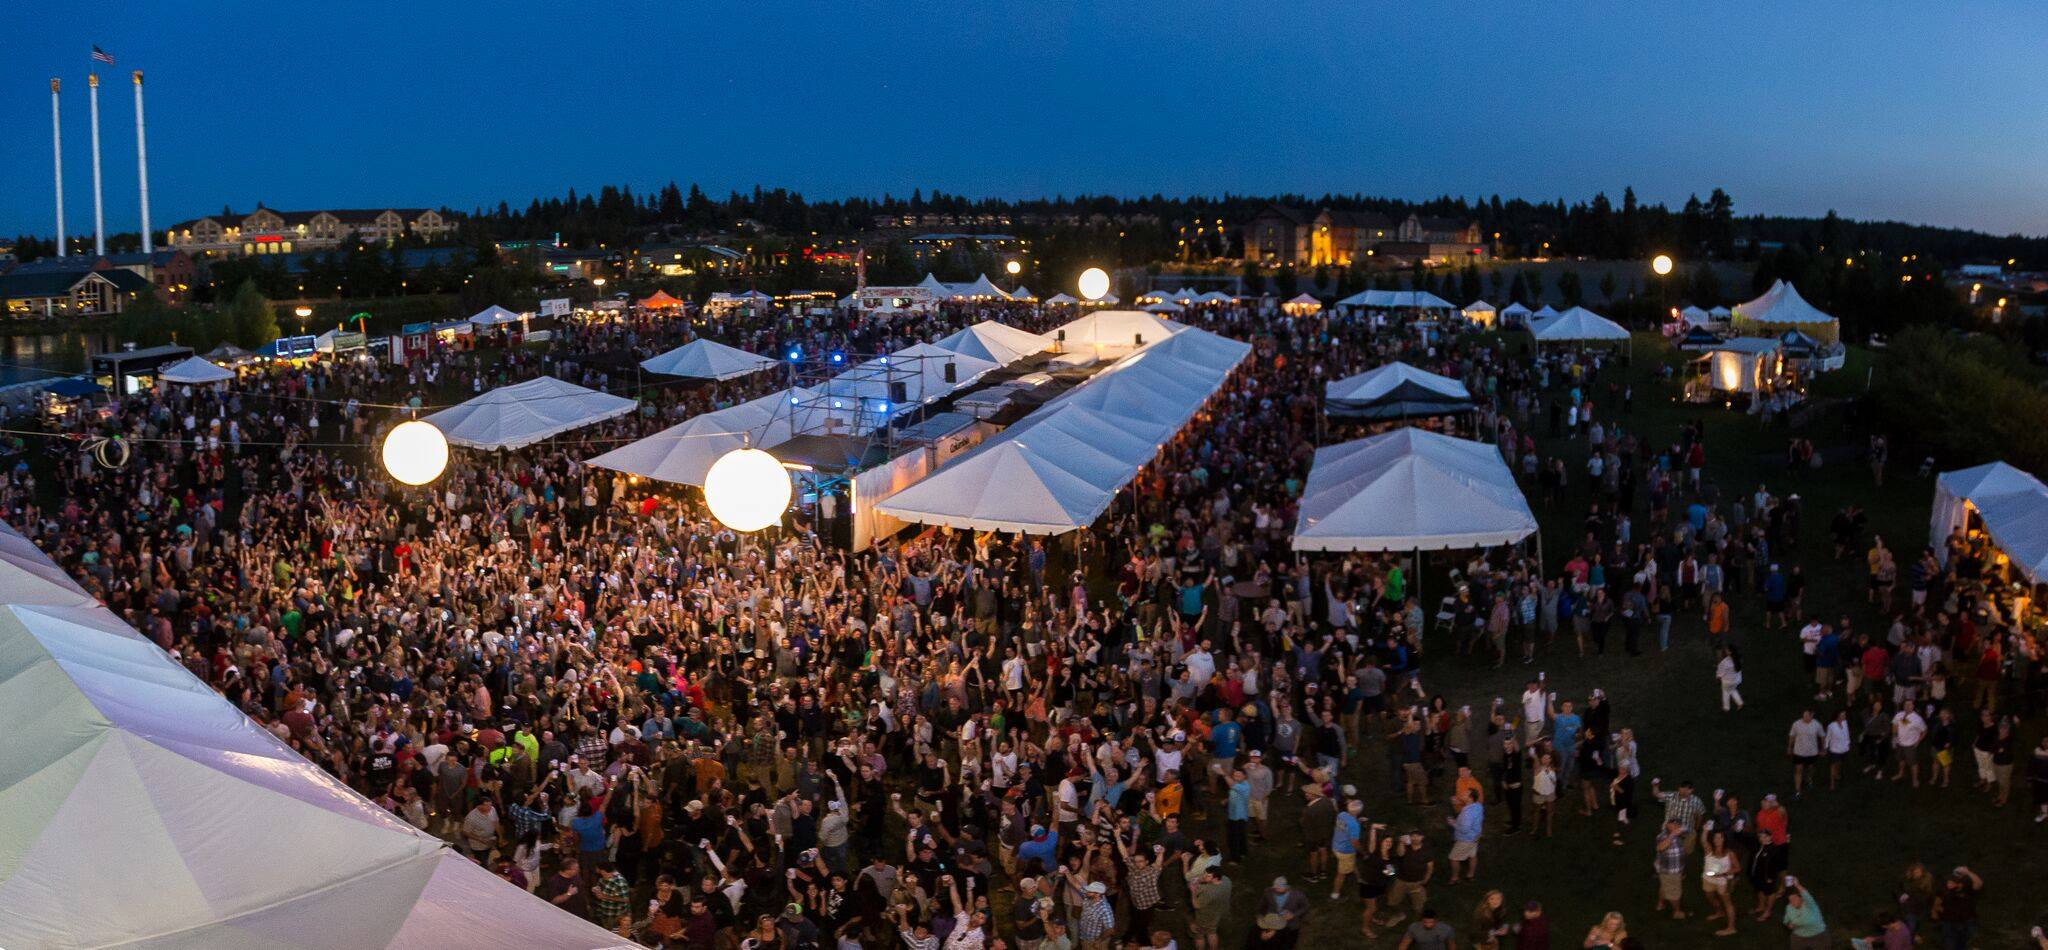 Evening revelry of the Bend Brewfest in Bend's Old Mill District. (image courtesy of Bend Brewfest)